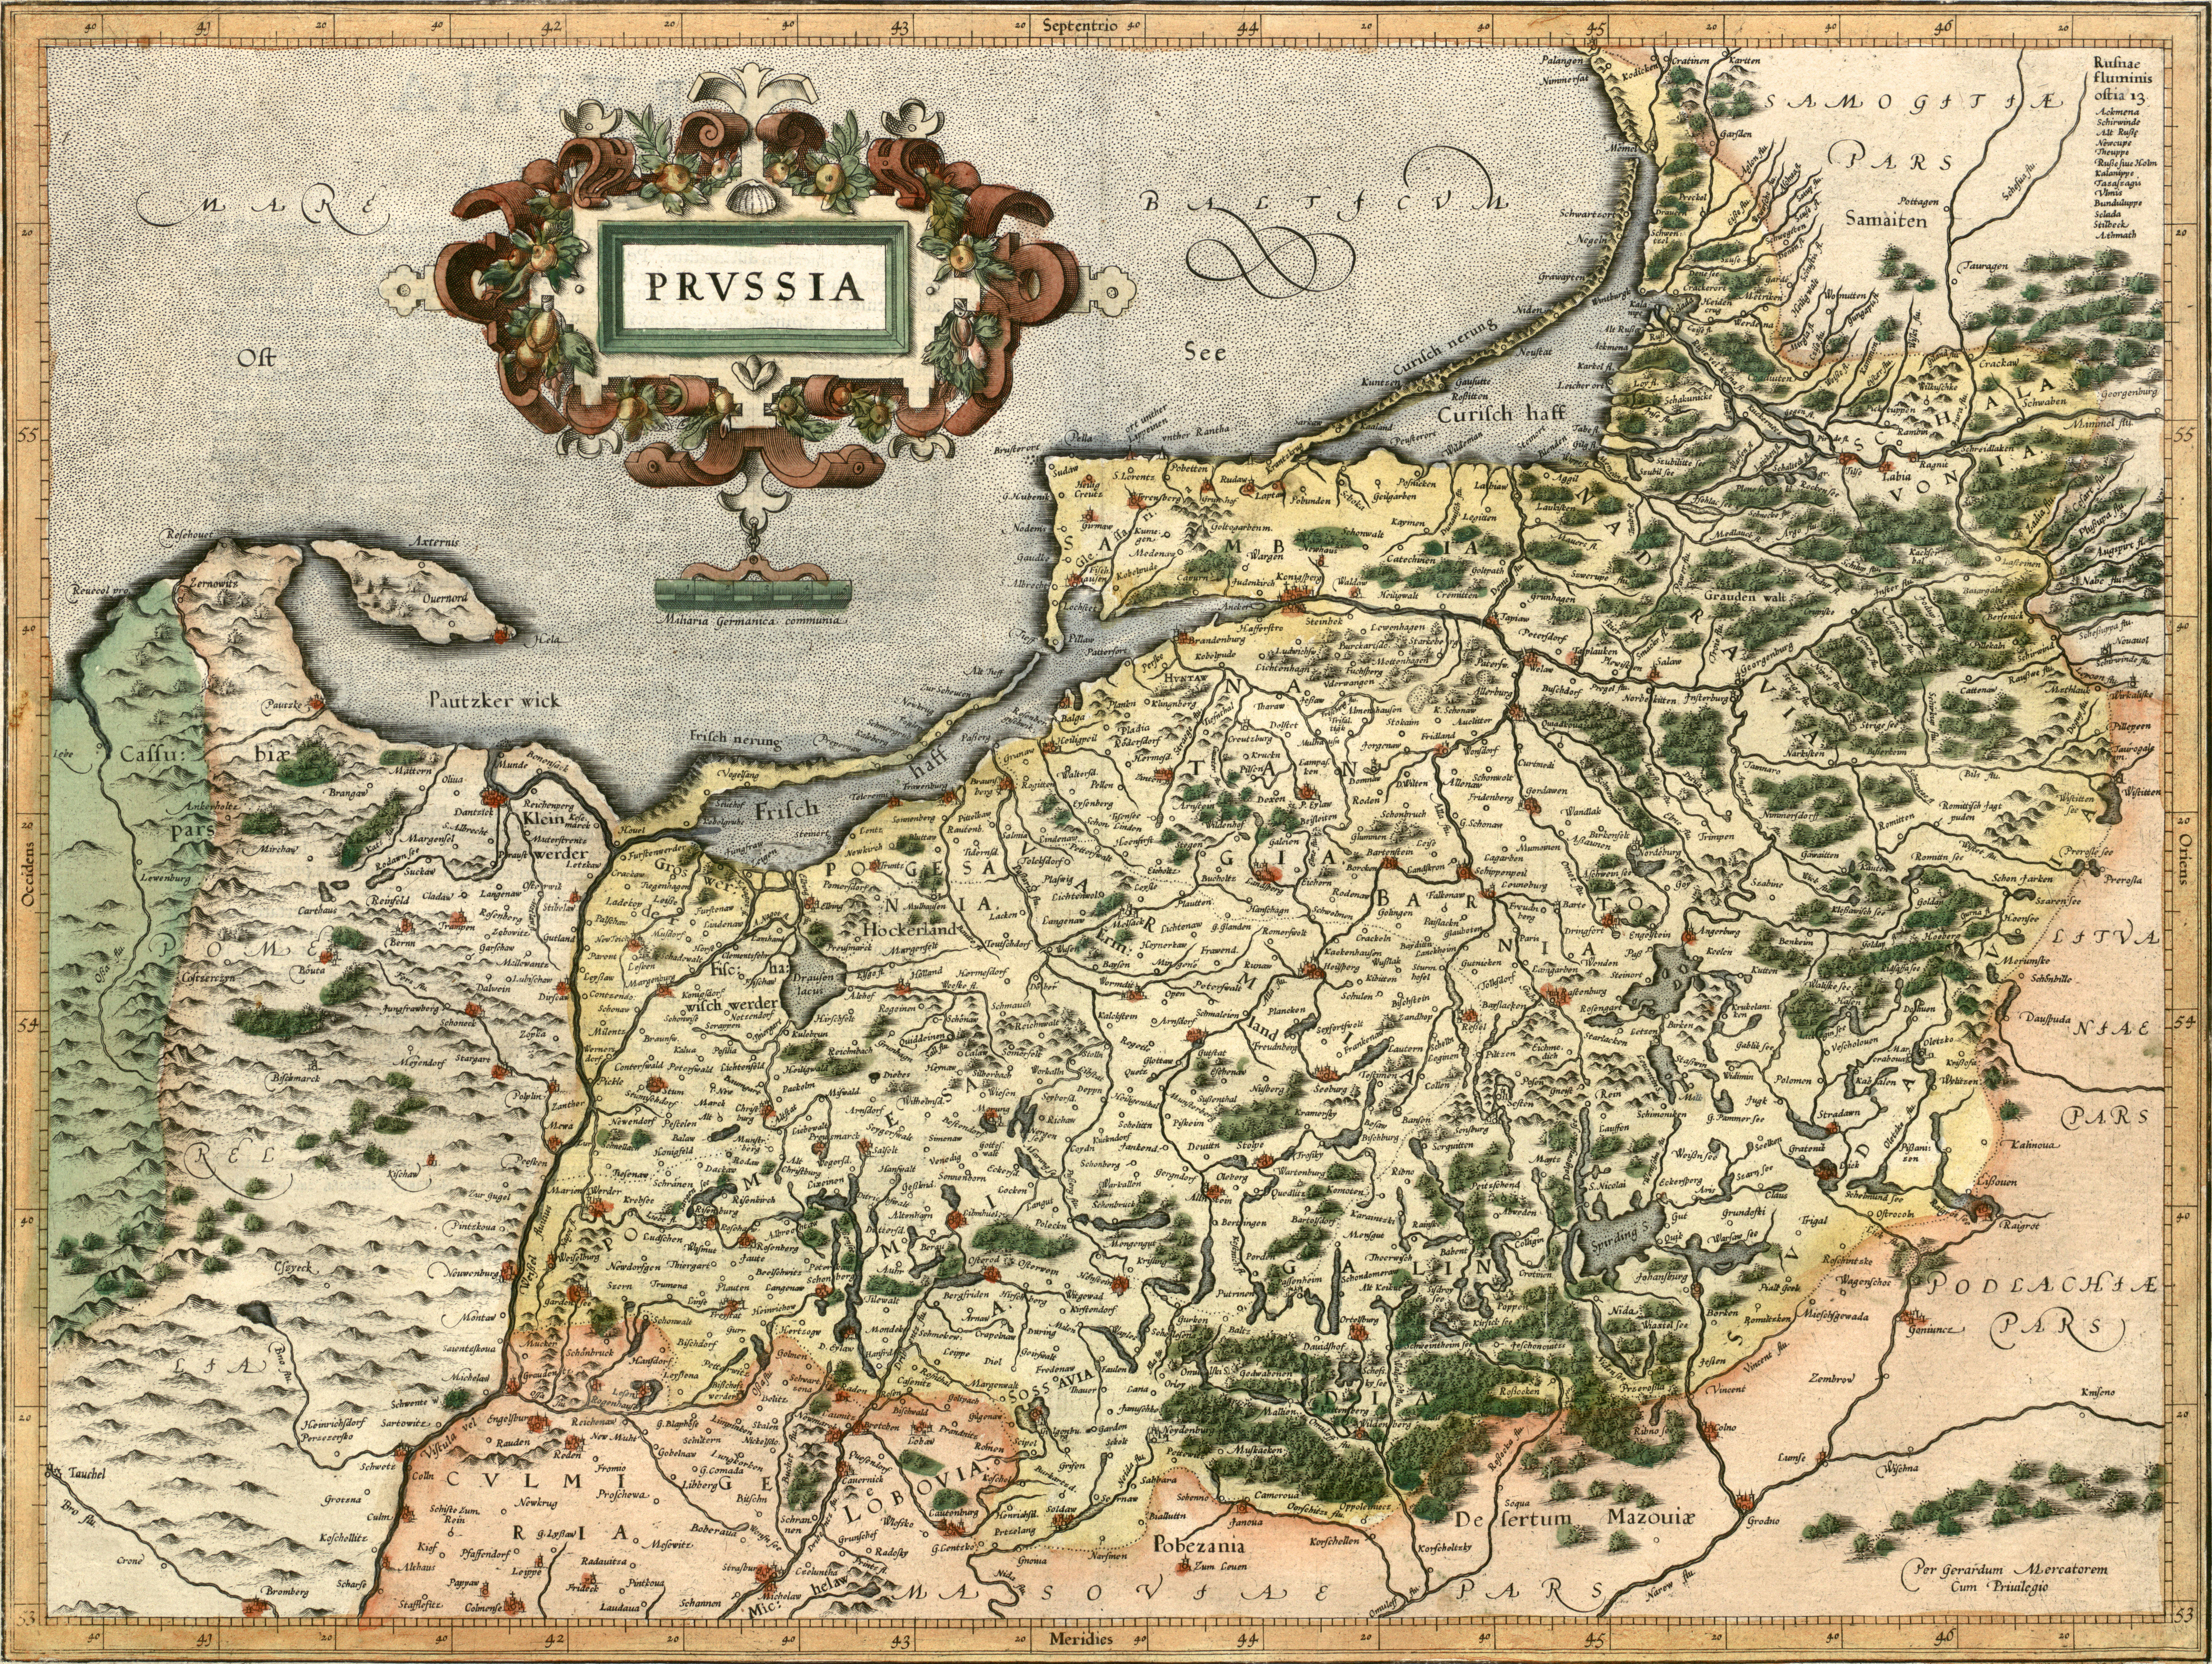 NICOLAUS COPERNICUS THORUNENSIS Prussia on a map by Gerard Mercator